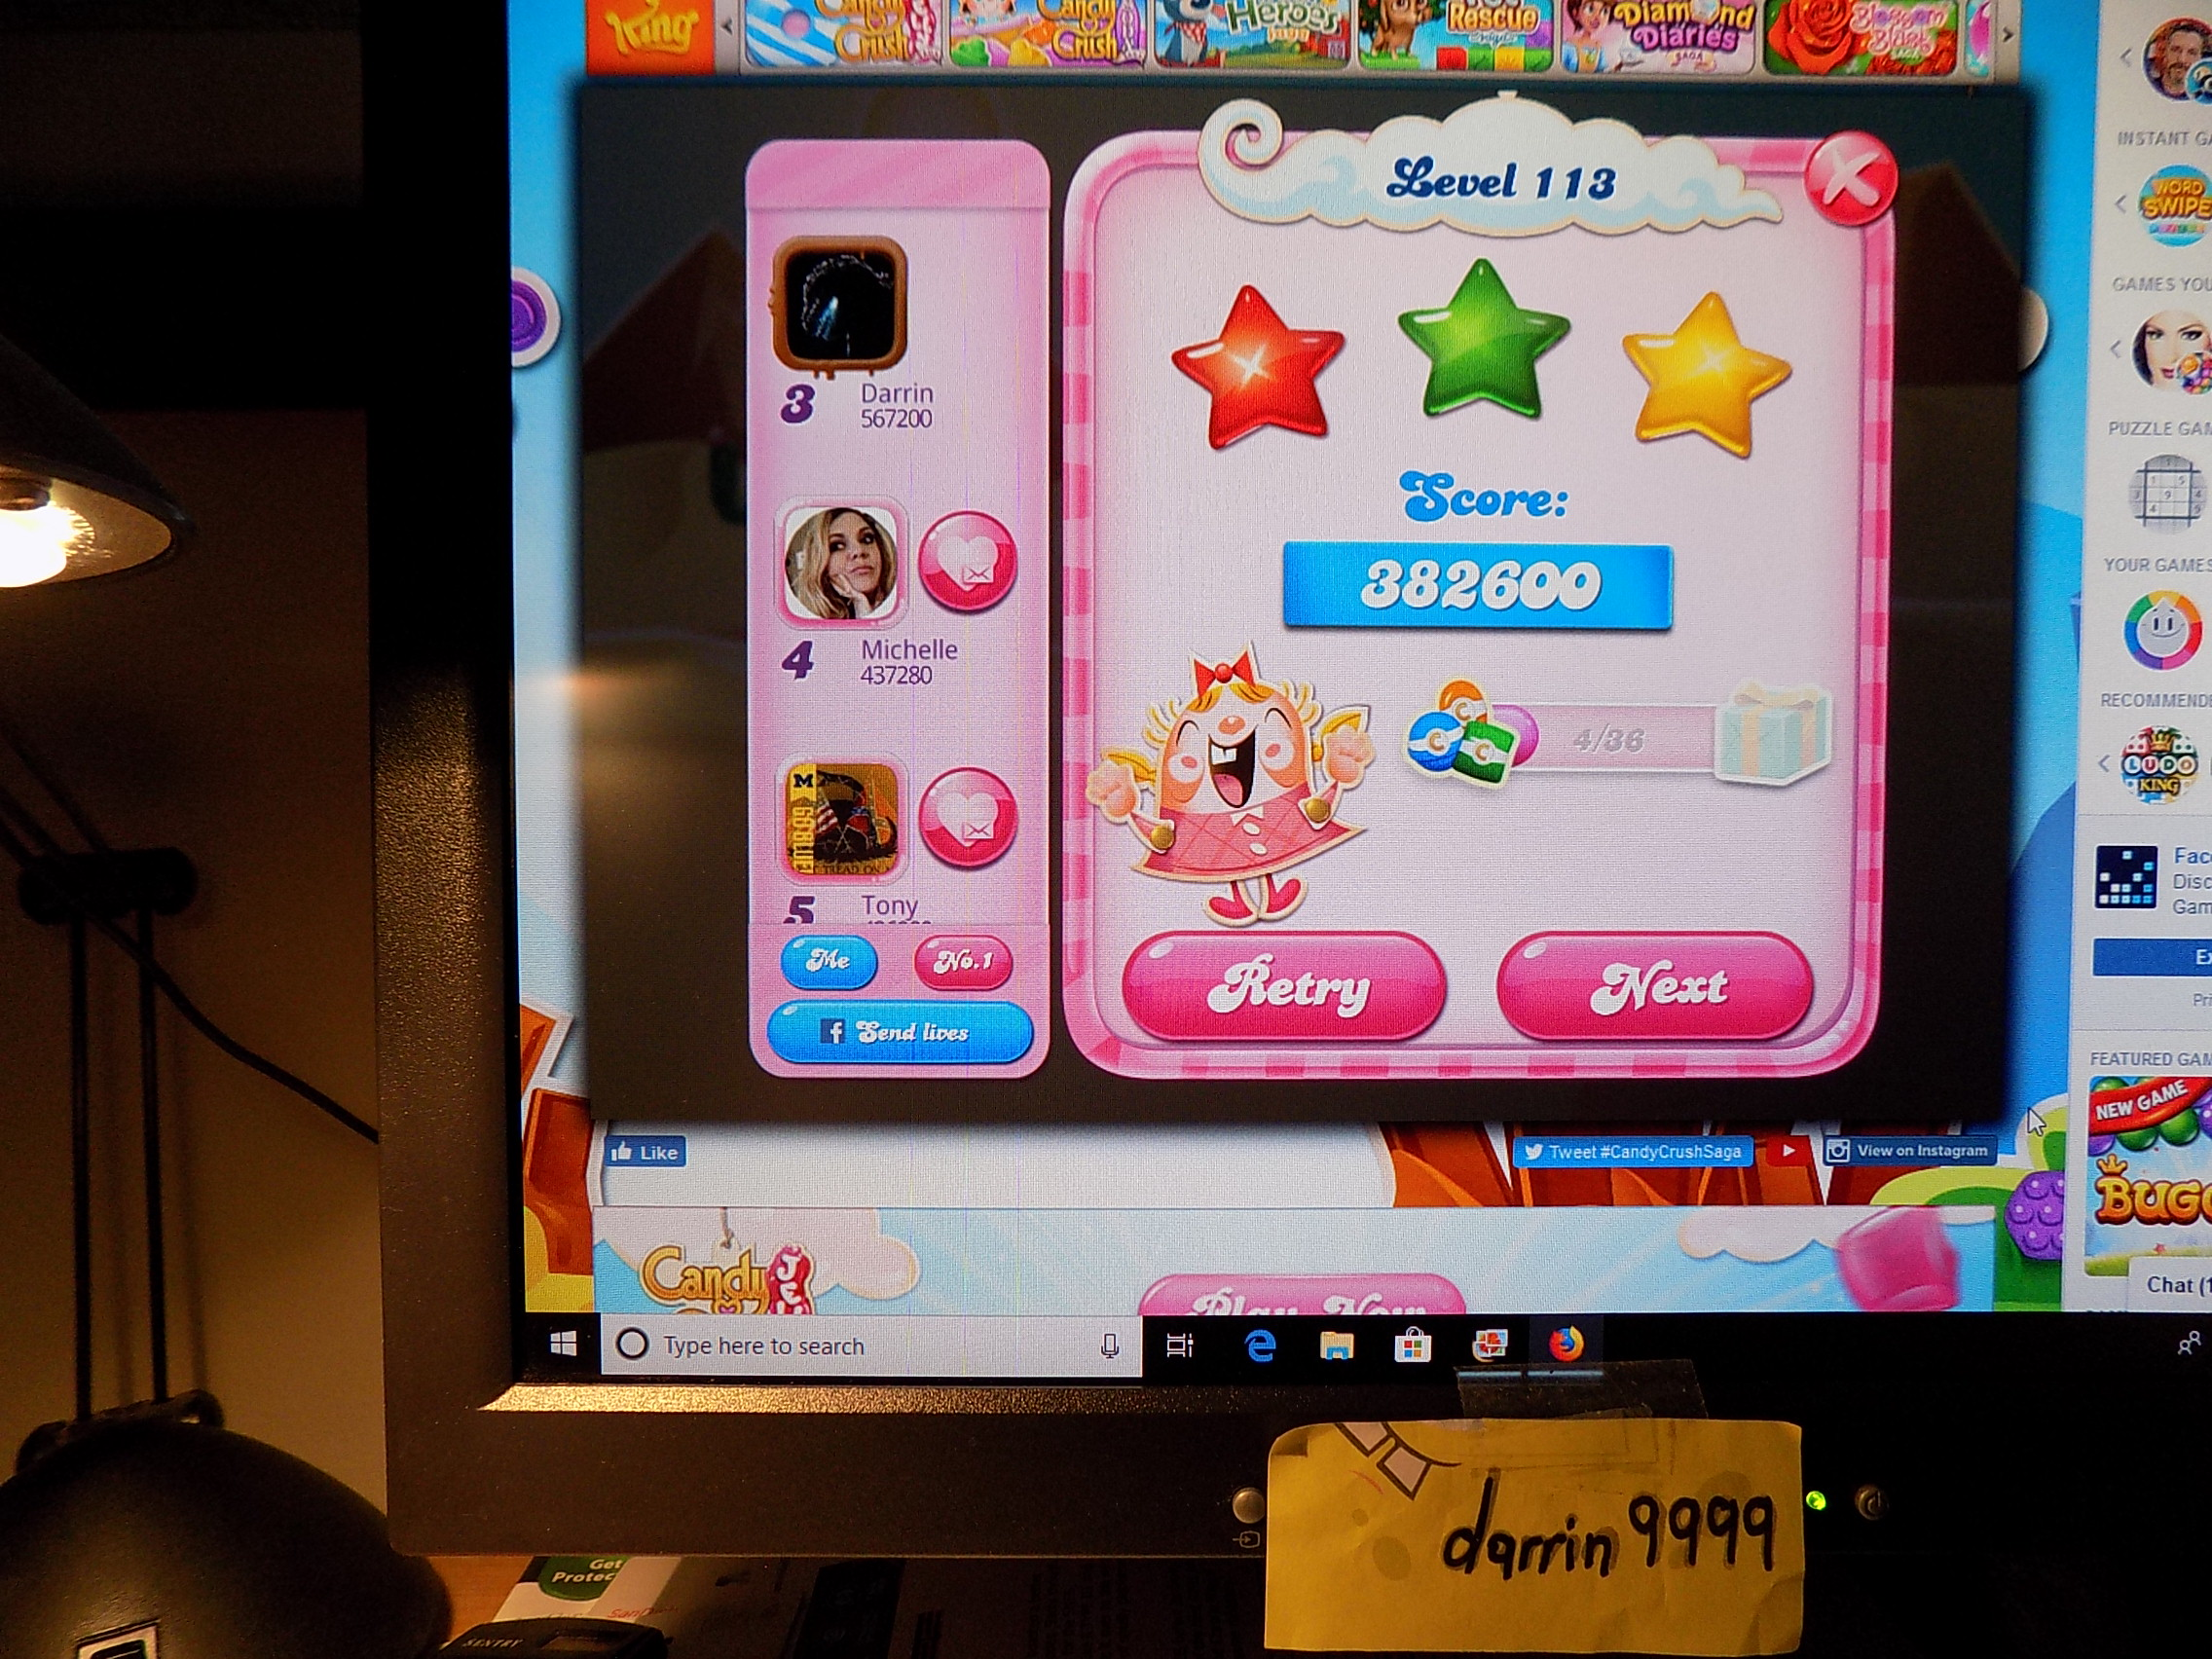 darrin9999: Candy Crush Saga: Level 113 (Web) 382,600 points on 2019-07-15 07:56:01